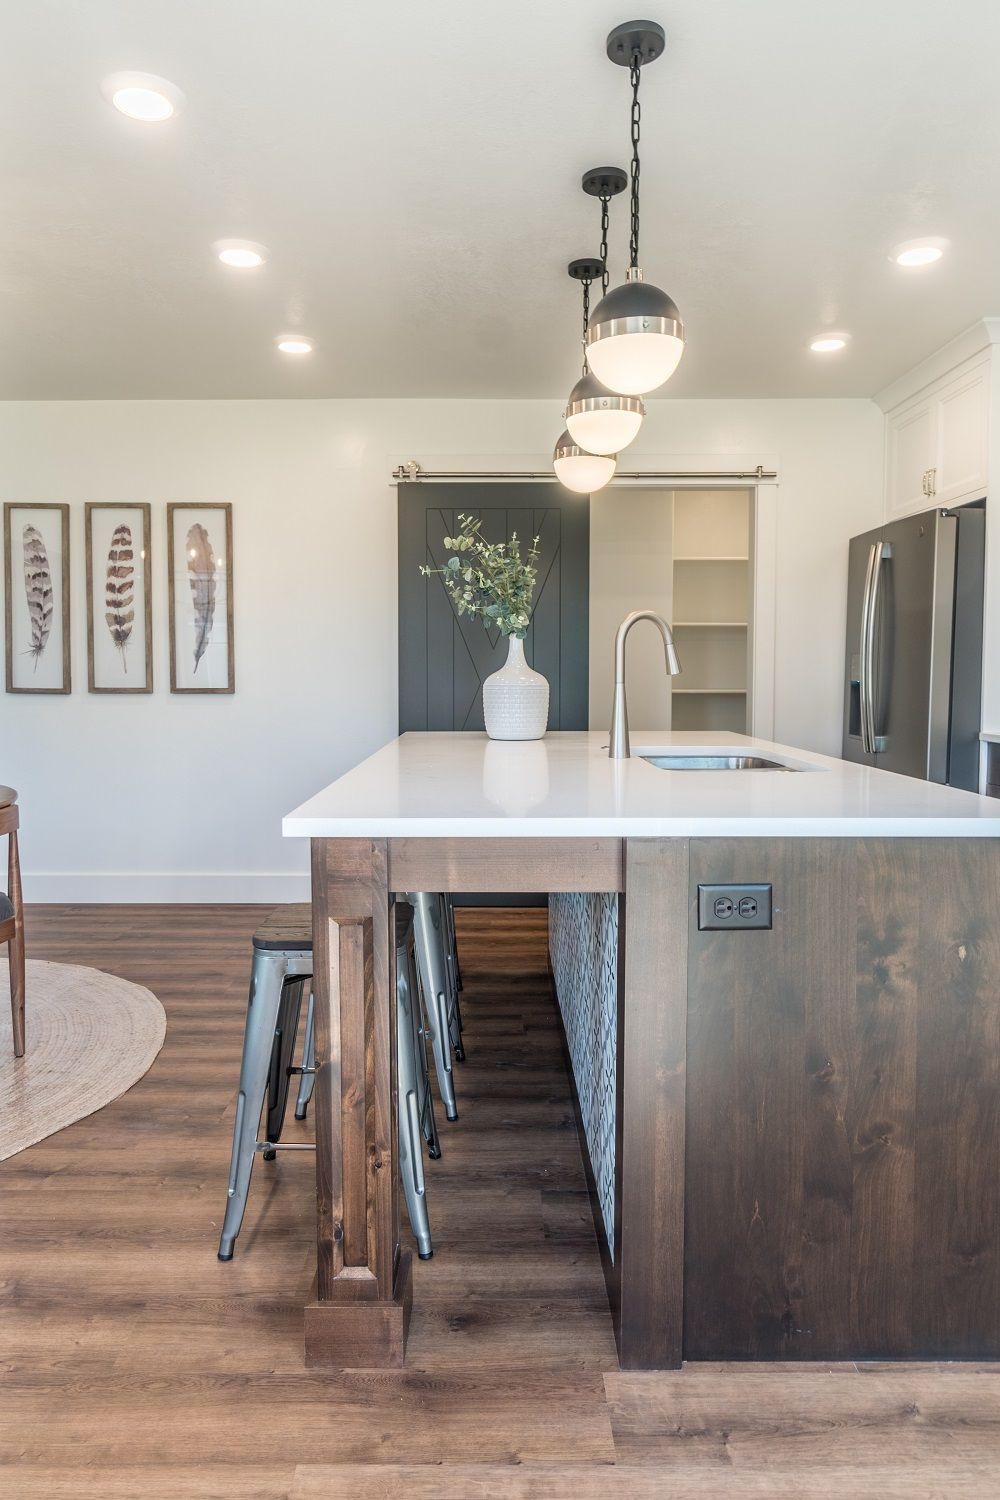 Kitchen featured in the Glendale (Basement)  By Visionary Homes in Logan, UT